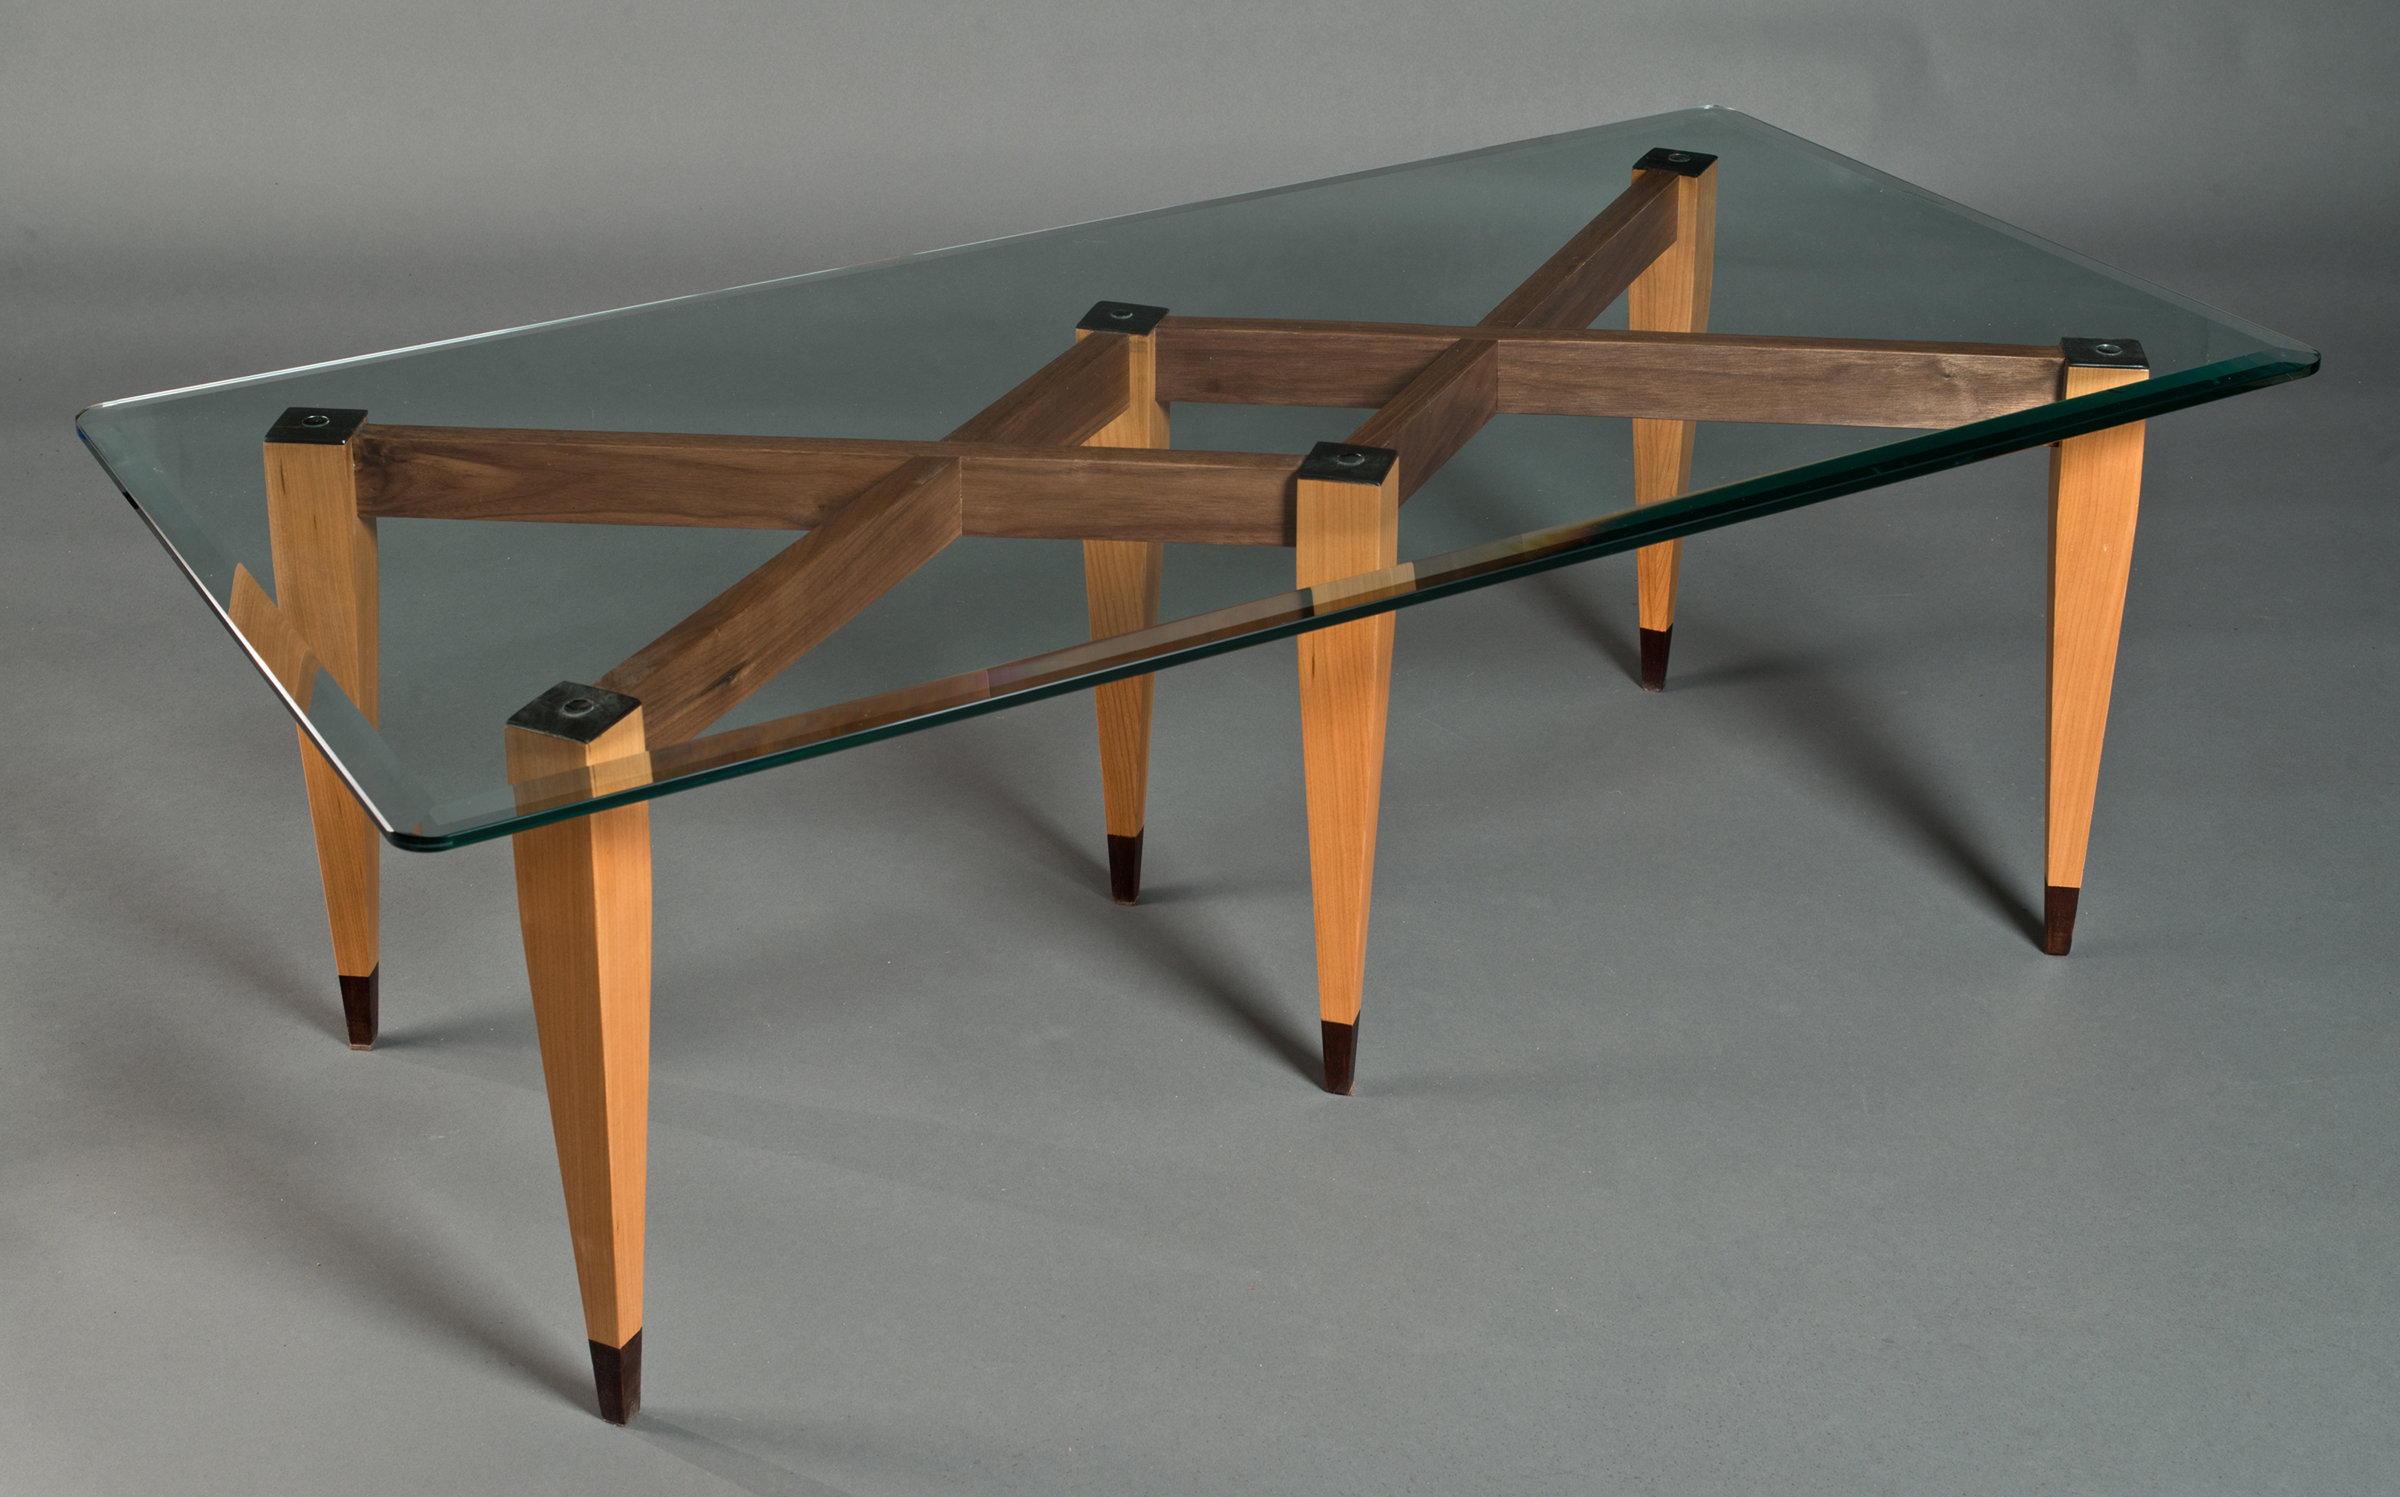 Picture of: Cherry Six Leg Table With Glass Top By David Kellum Wood Coffee Table Artful Home